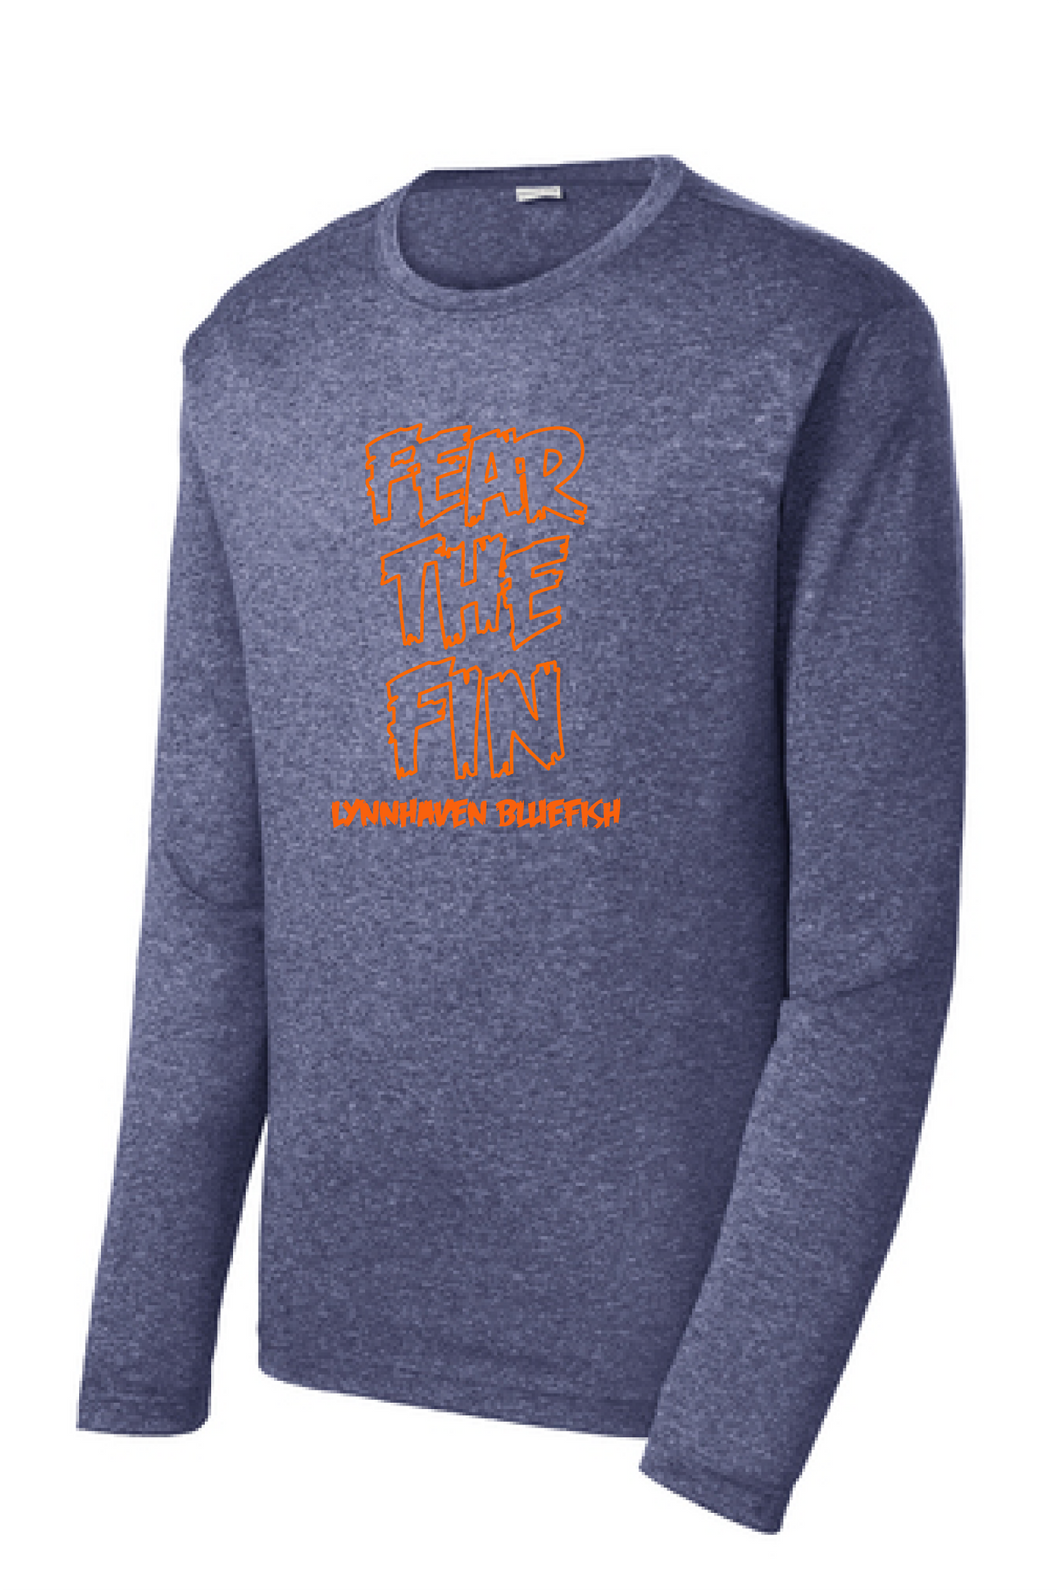 Long Sleeve Heather Contender Tee / Navy Heather / LMS - Fidgety